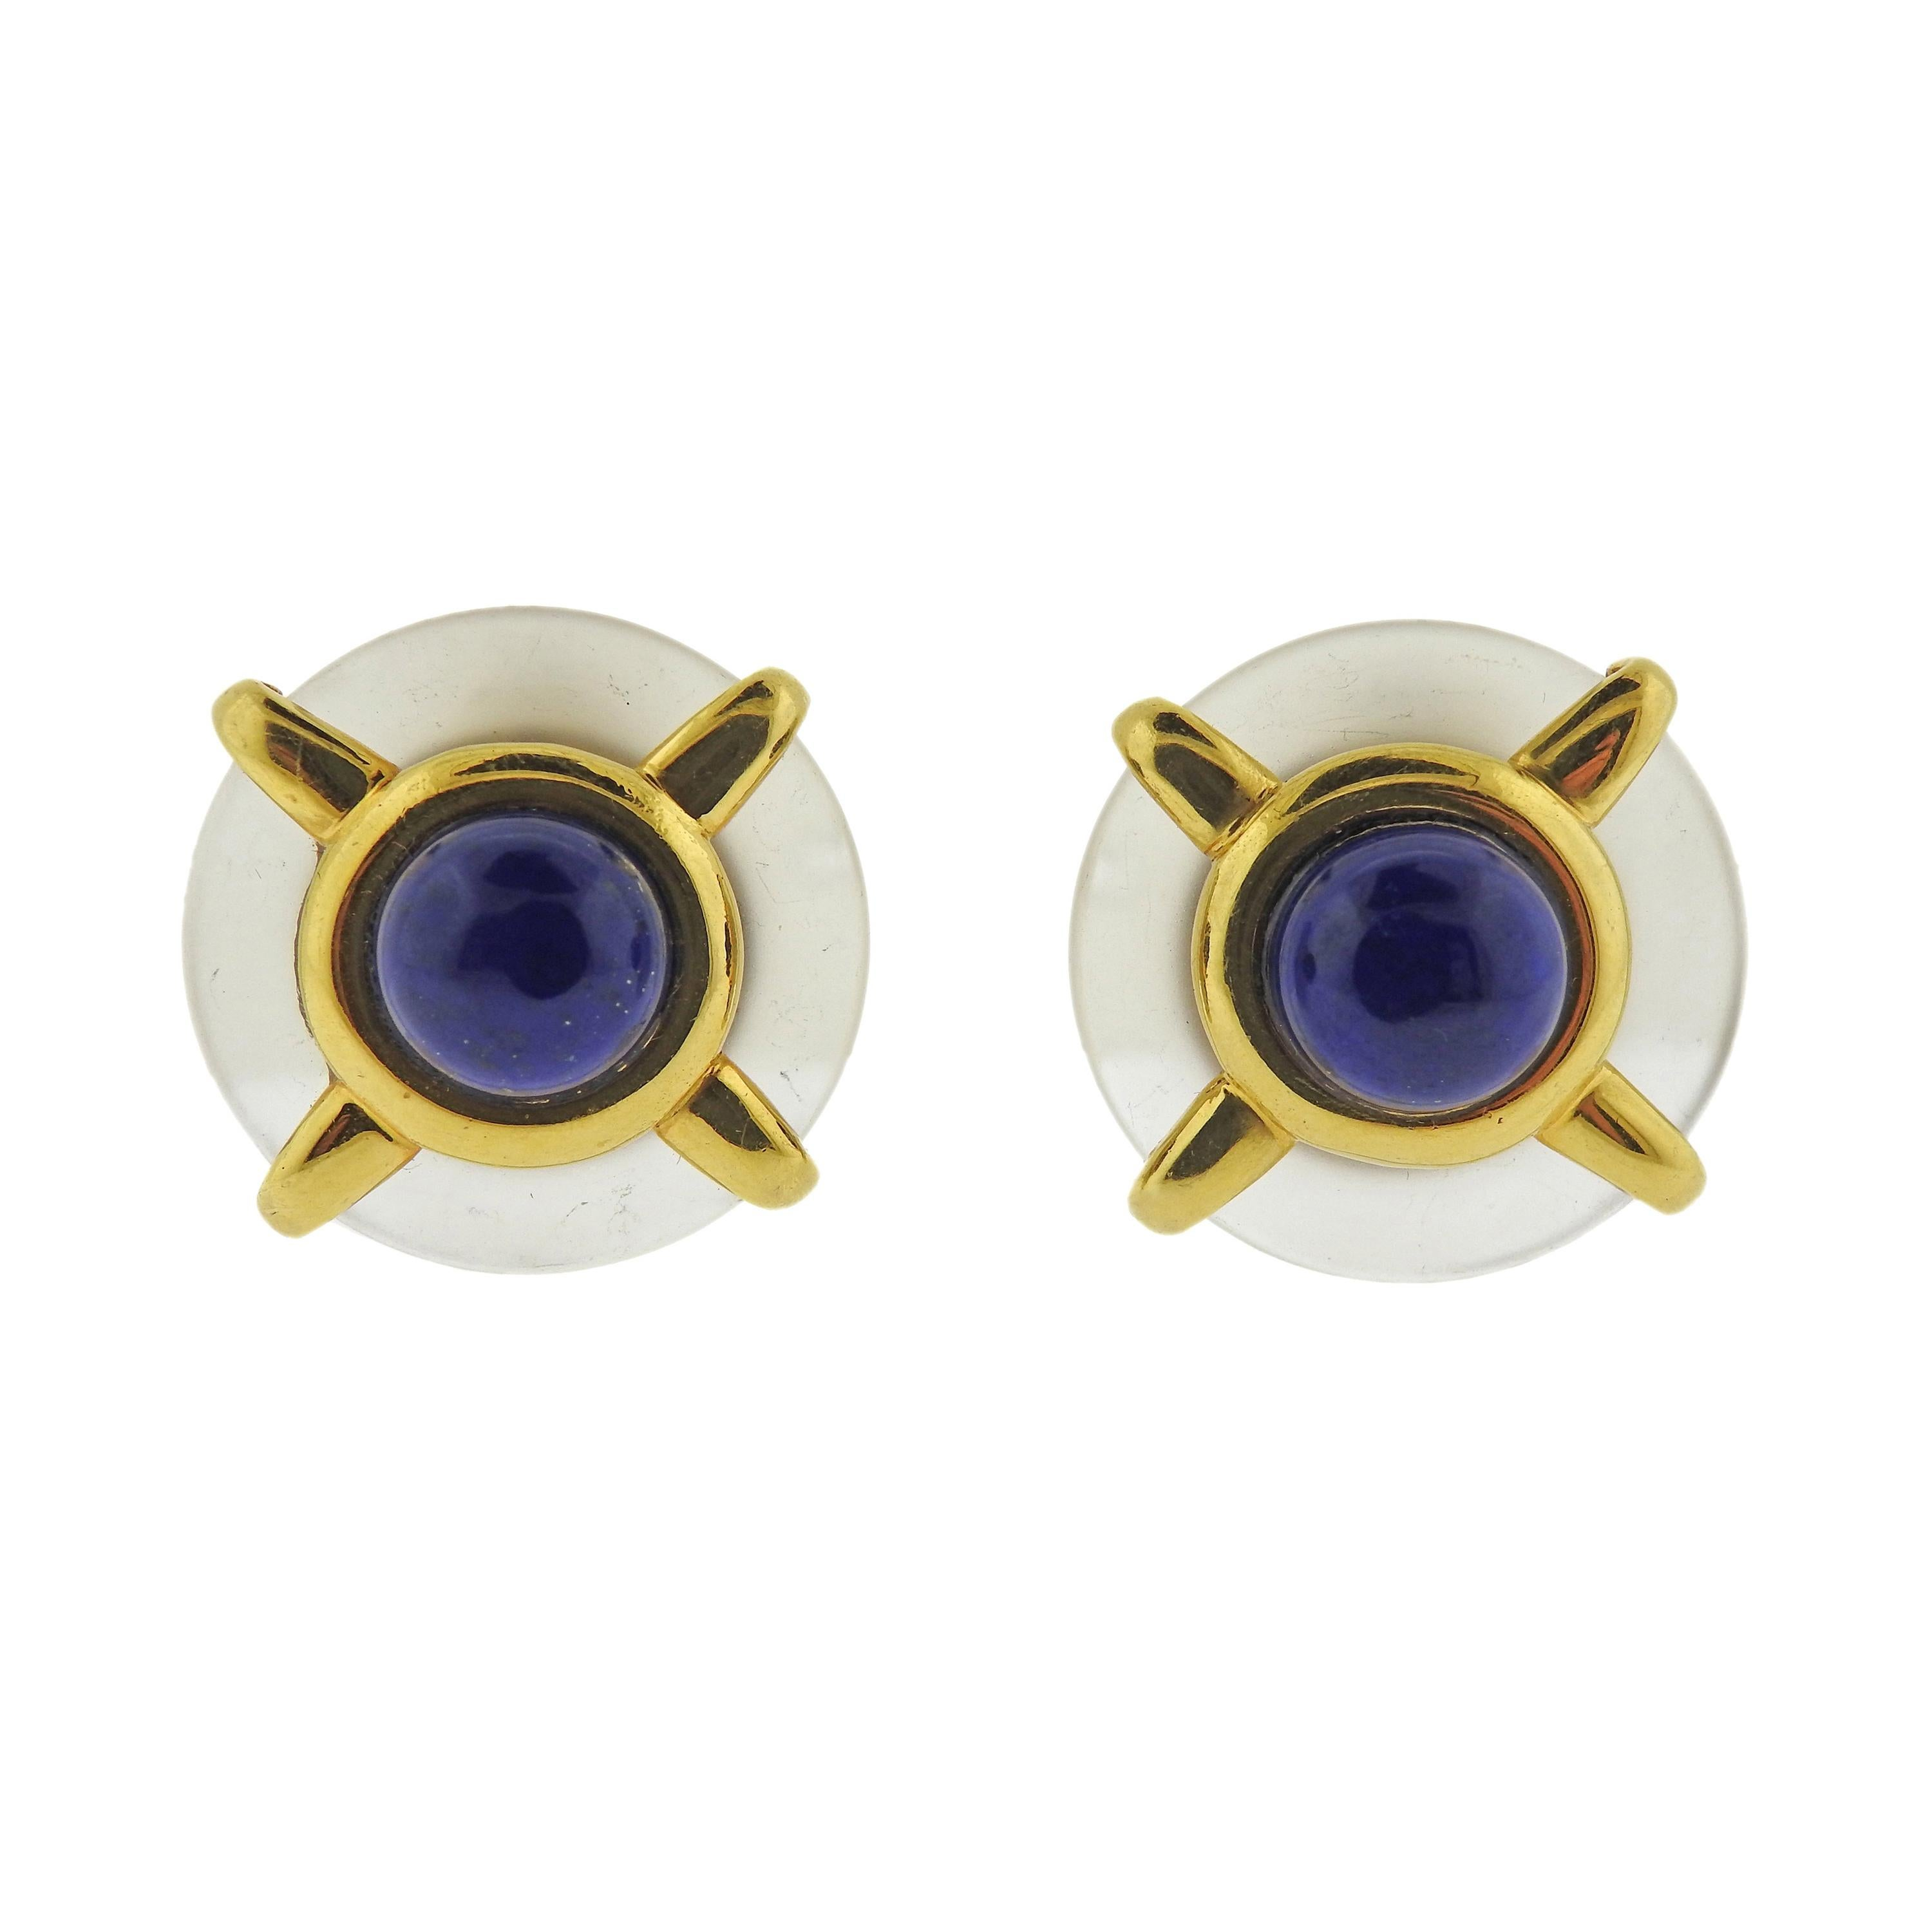 Cartier Aldo Cipullo 1970s Frosted Crystal Lapis Gold Earrings